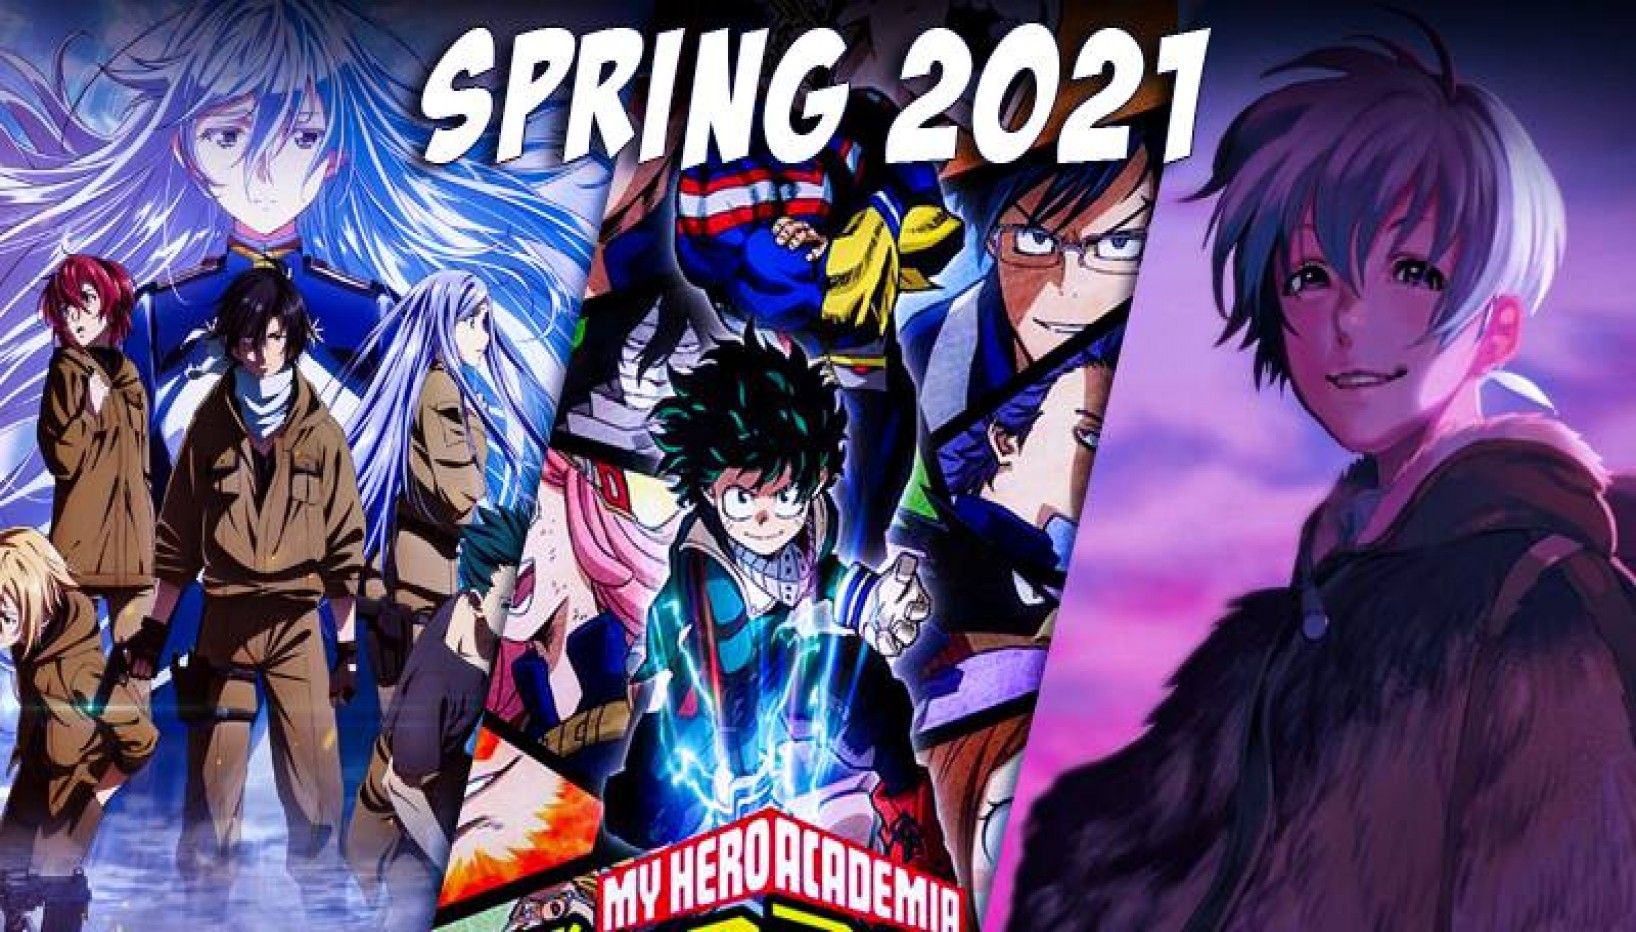 7 Most Anticipated Anime Shows From Spring 2021